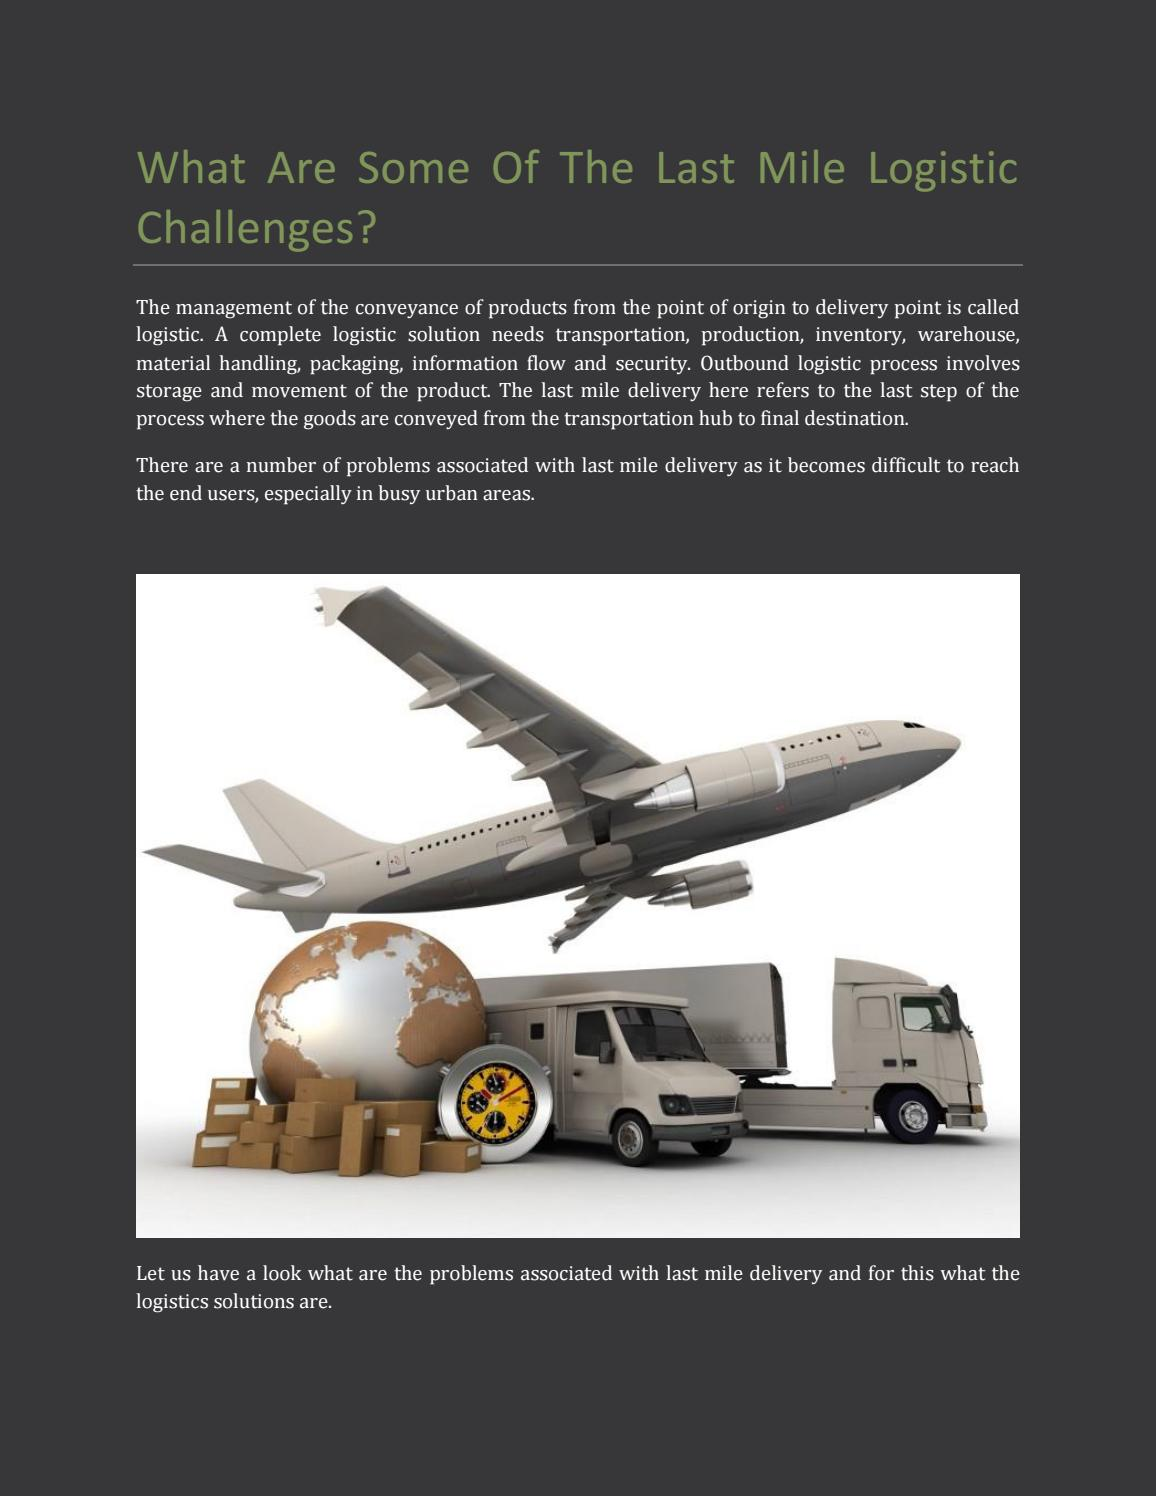 What are some of the last mile logistic challenges by